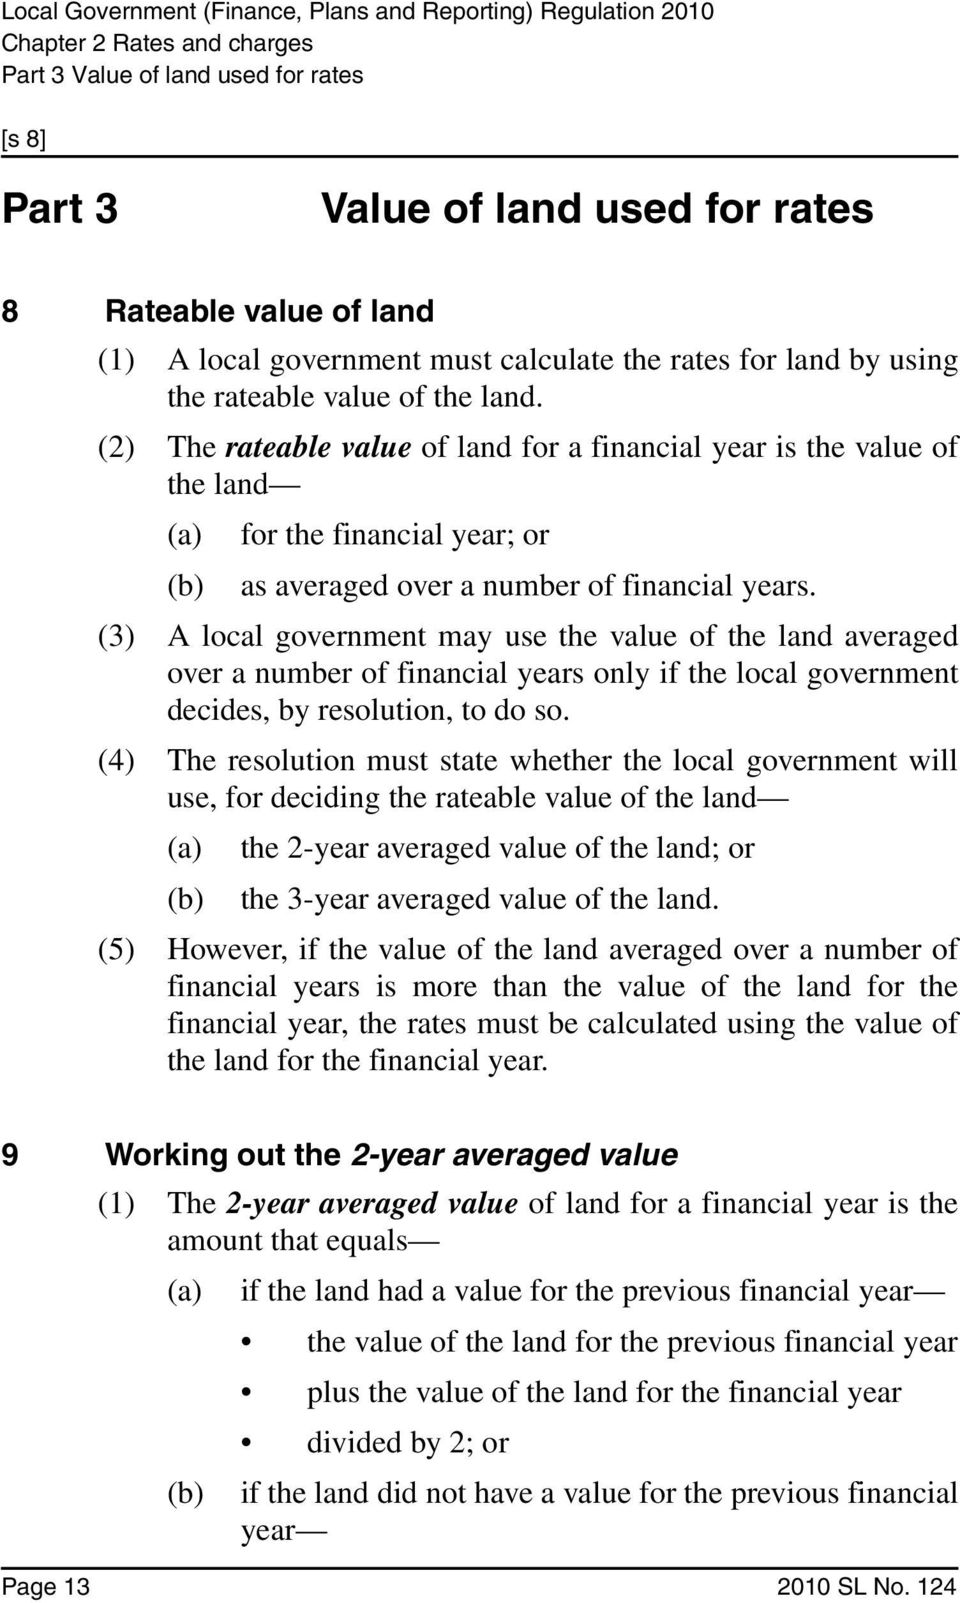 (3) A local government may use the value of the land averaged over a number of financial years only if the local government decides, by resolution, to do so.